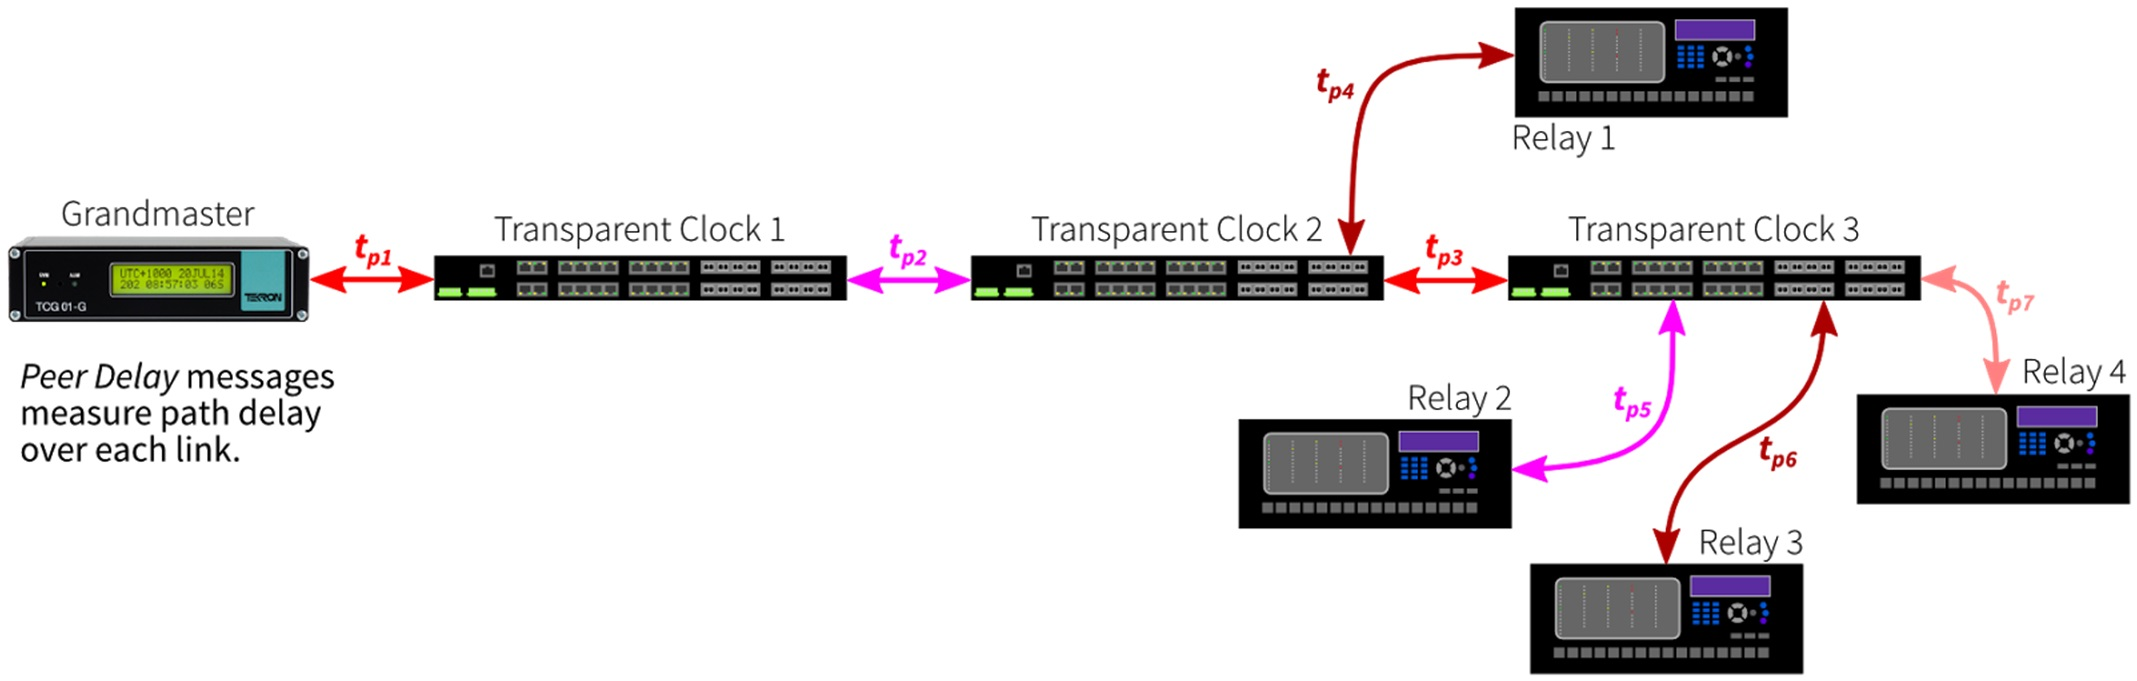 Figure 7: Peer Delay messages are exchanged across each link in the network and are not propagated.